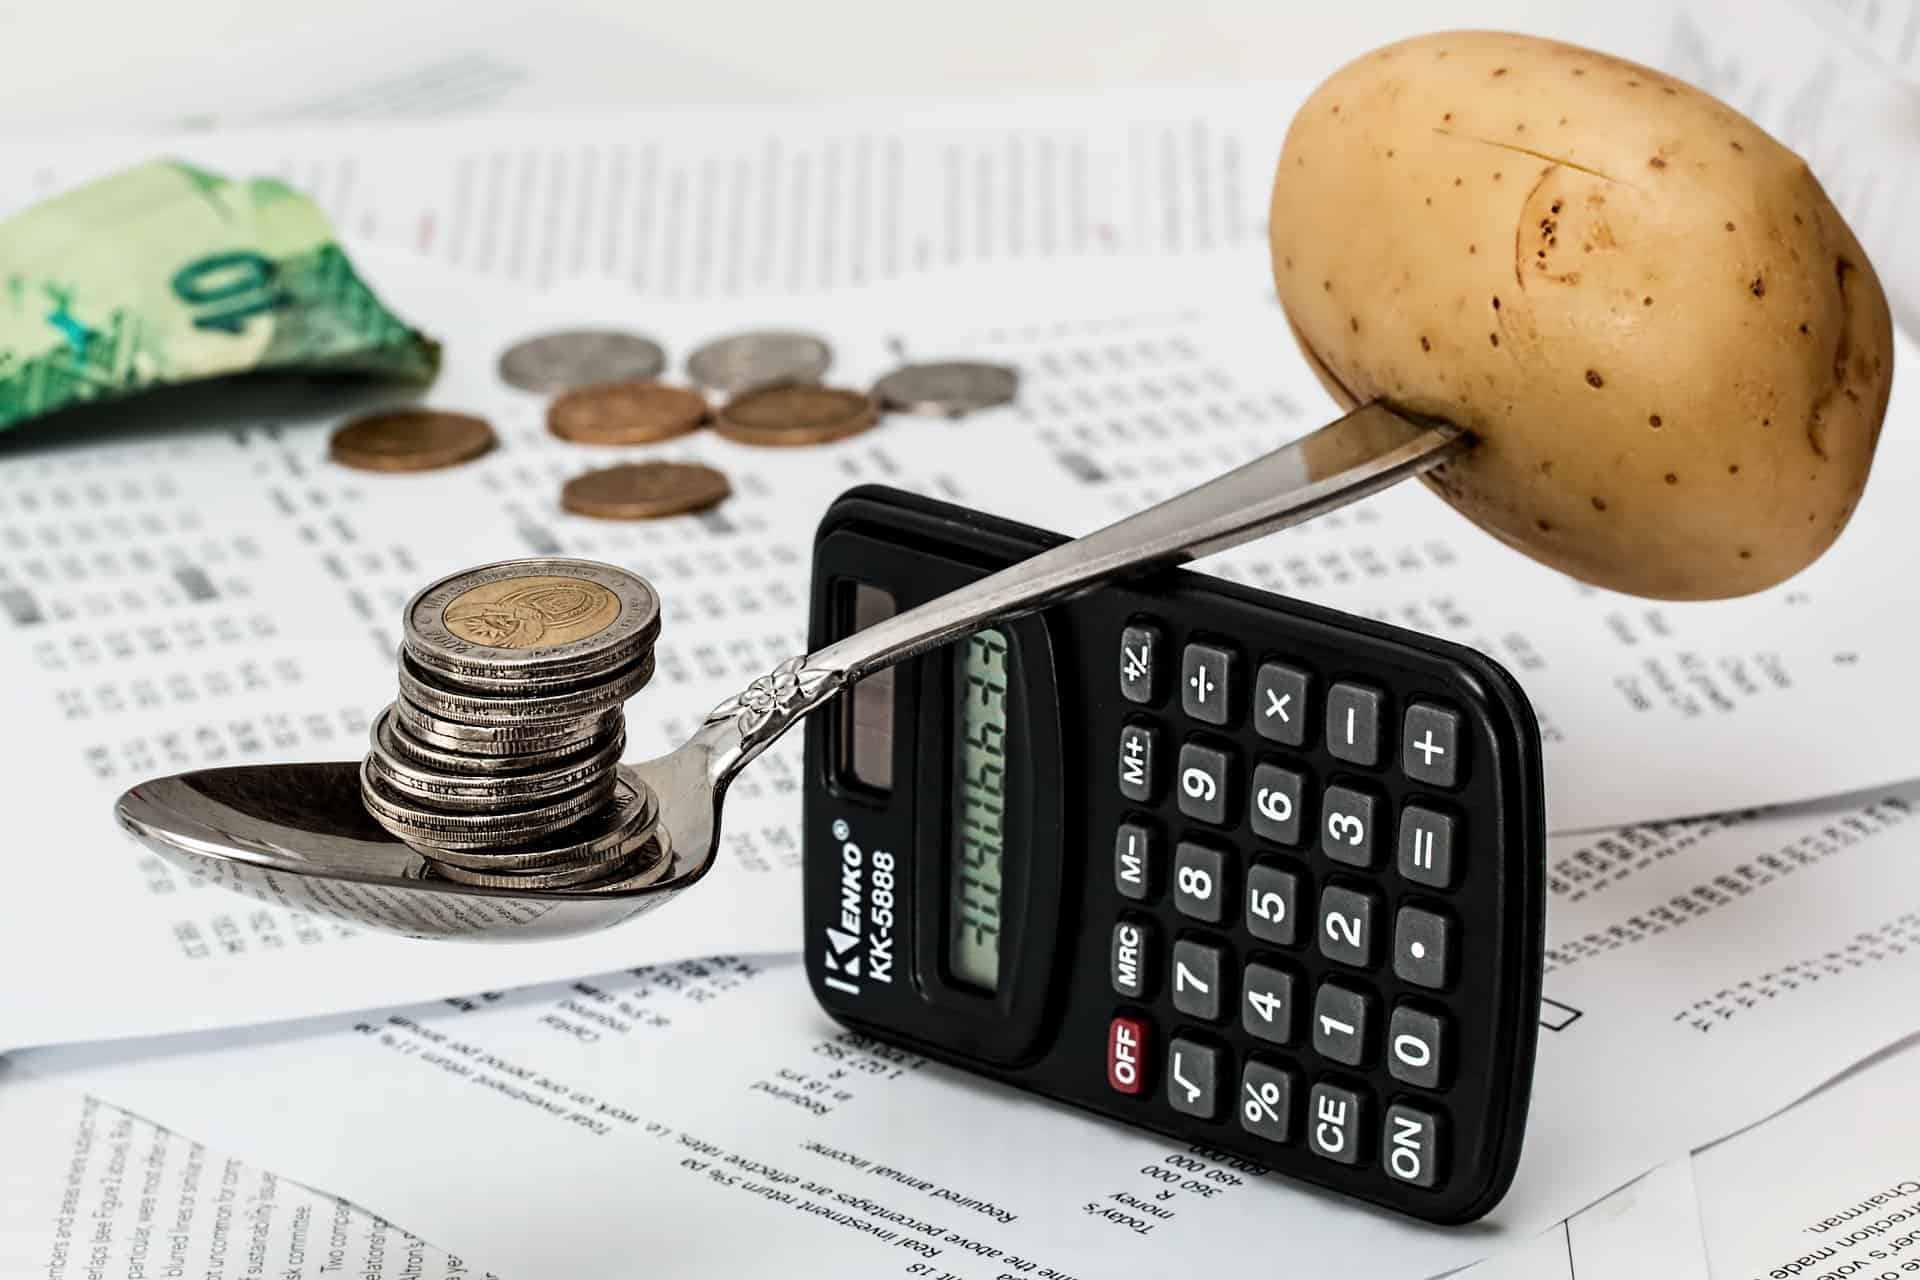 Double entry book keeping provides an easy means to account for a business' transactions.